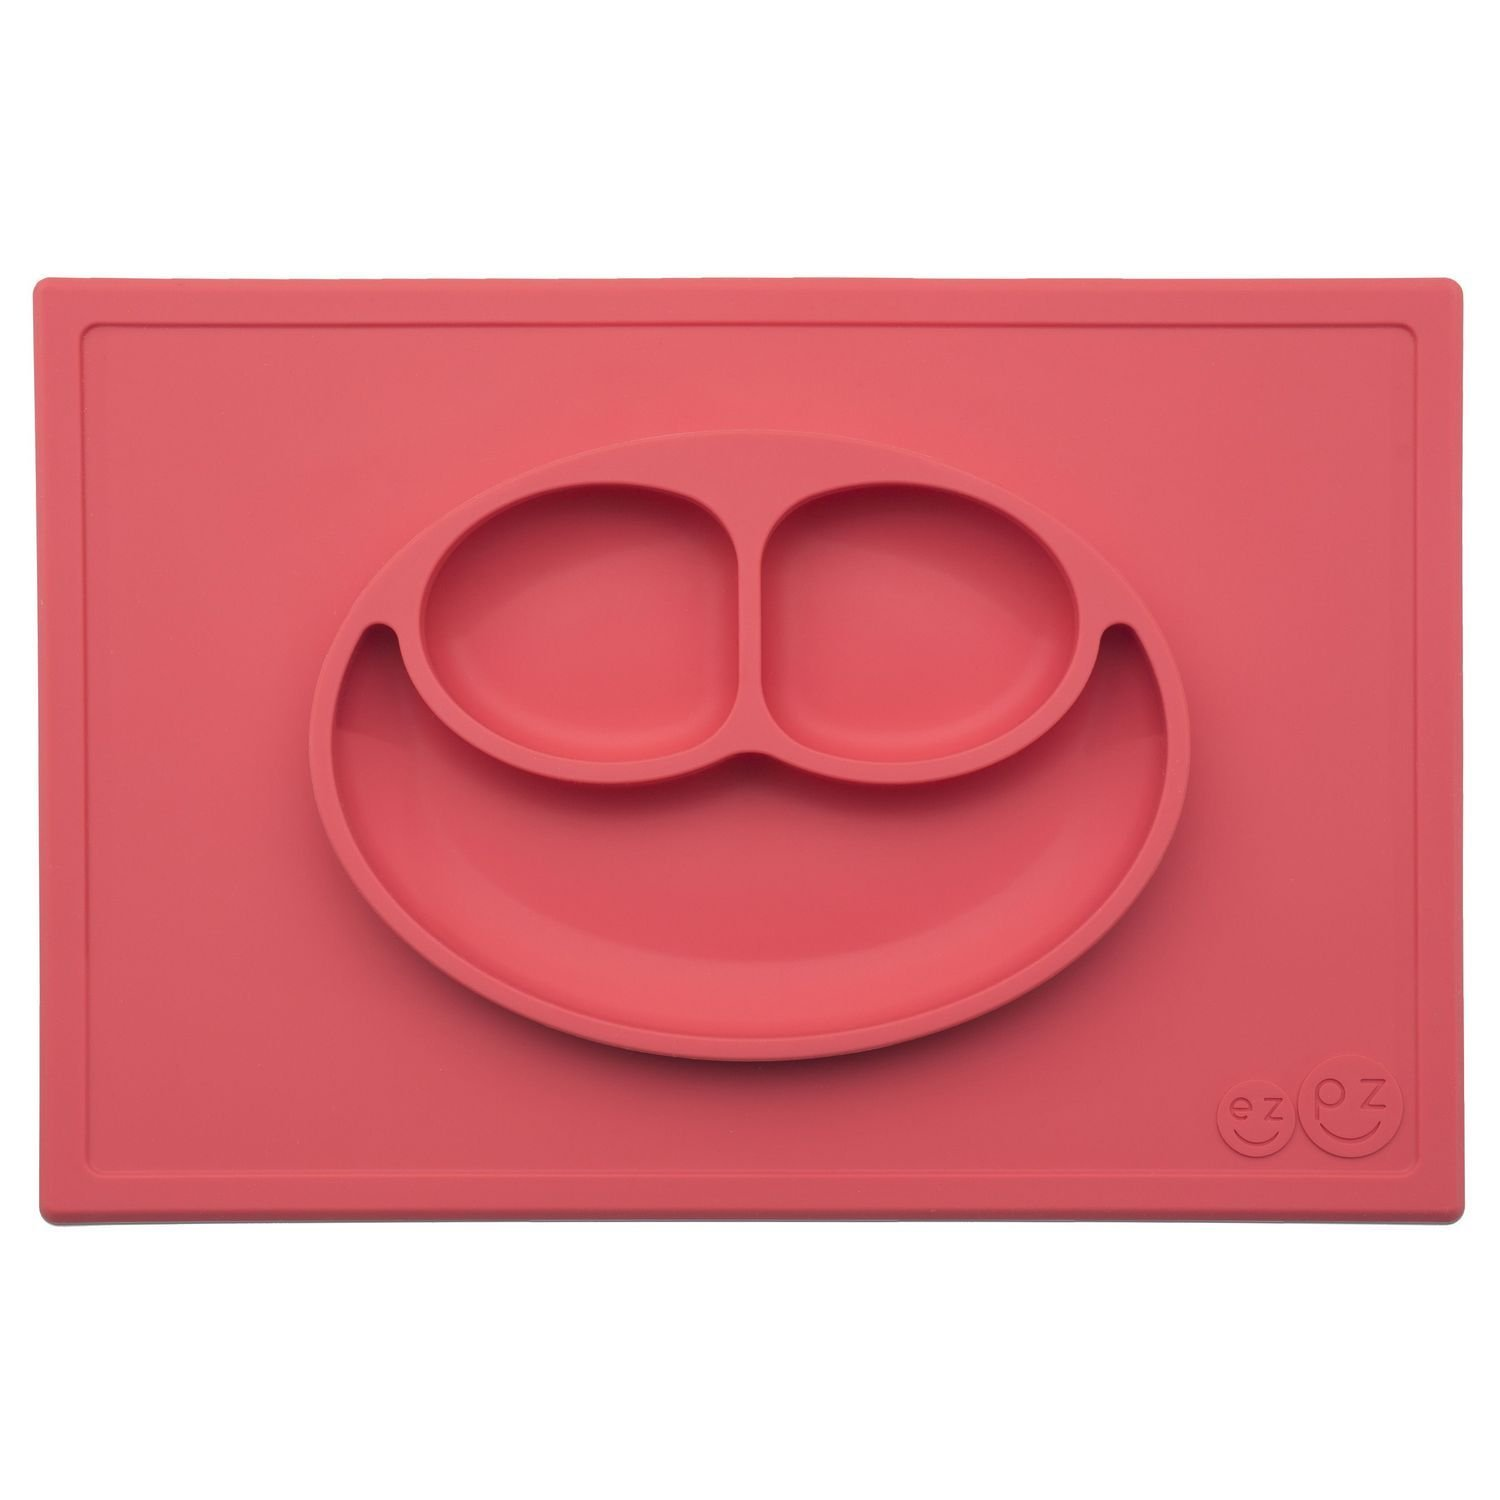 ezpz Happy Mat - One-piece silicone placemat + plate (Coral) PKHMC004